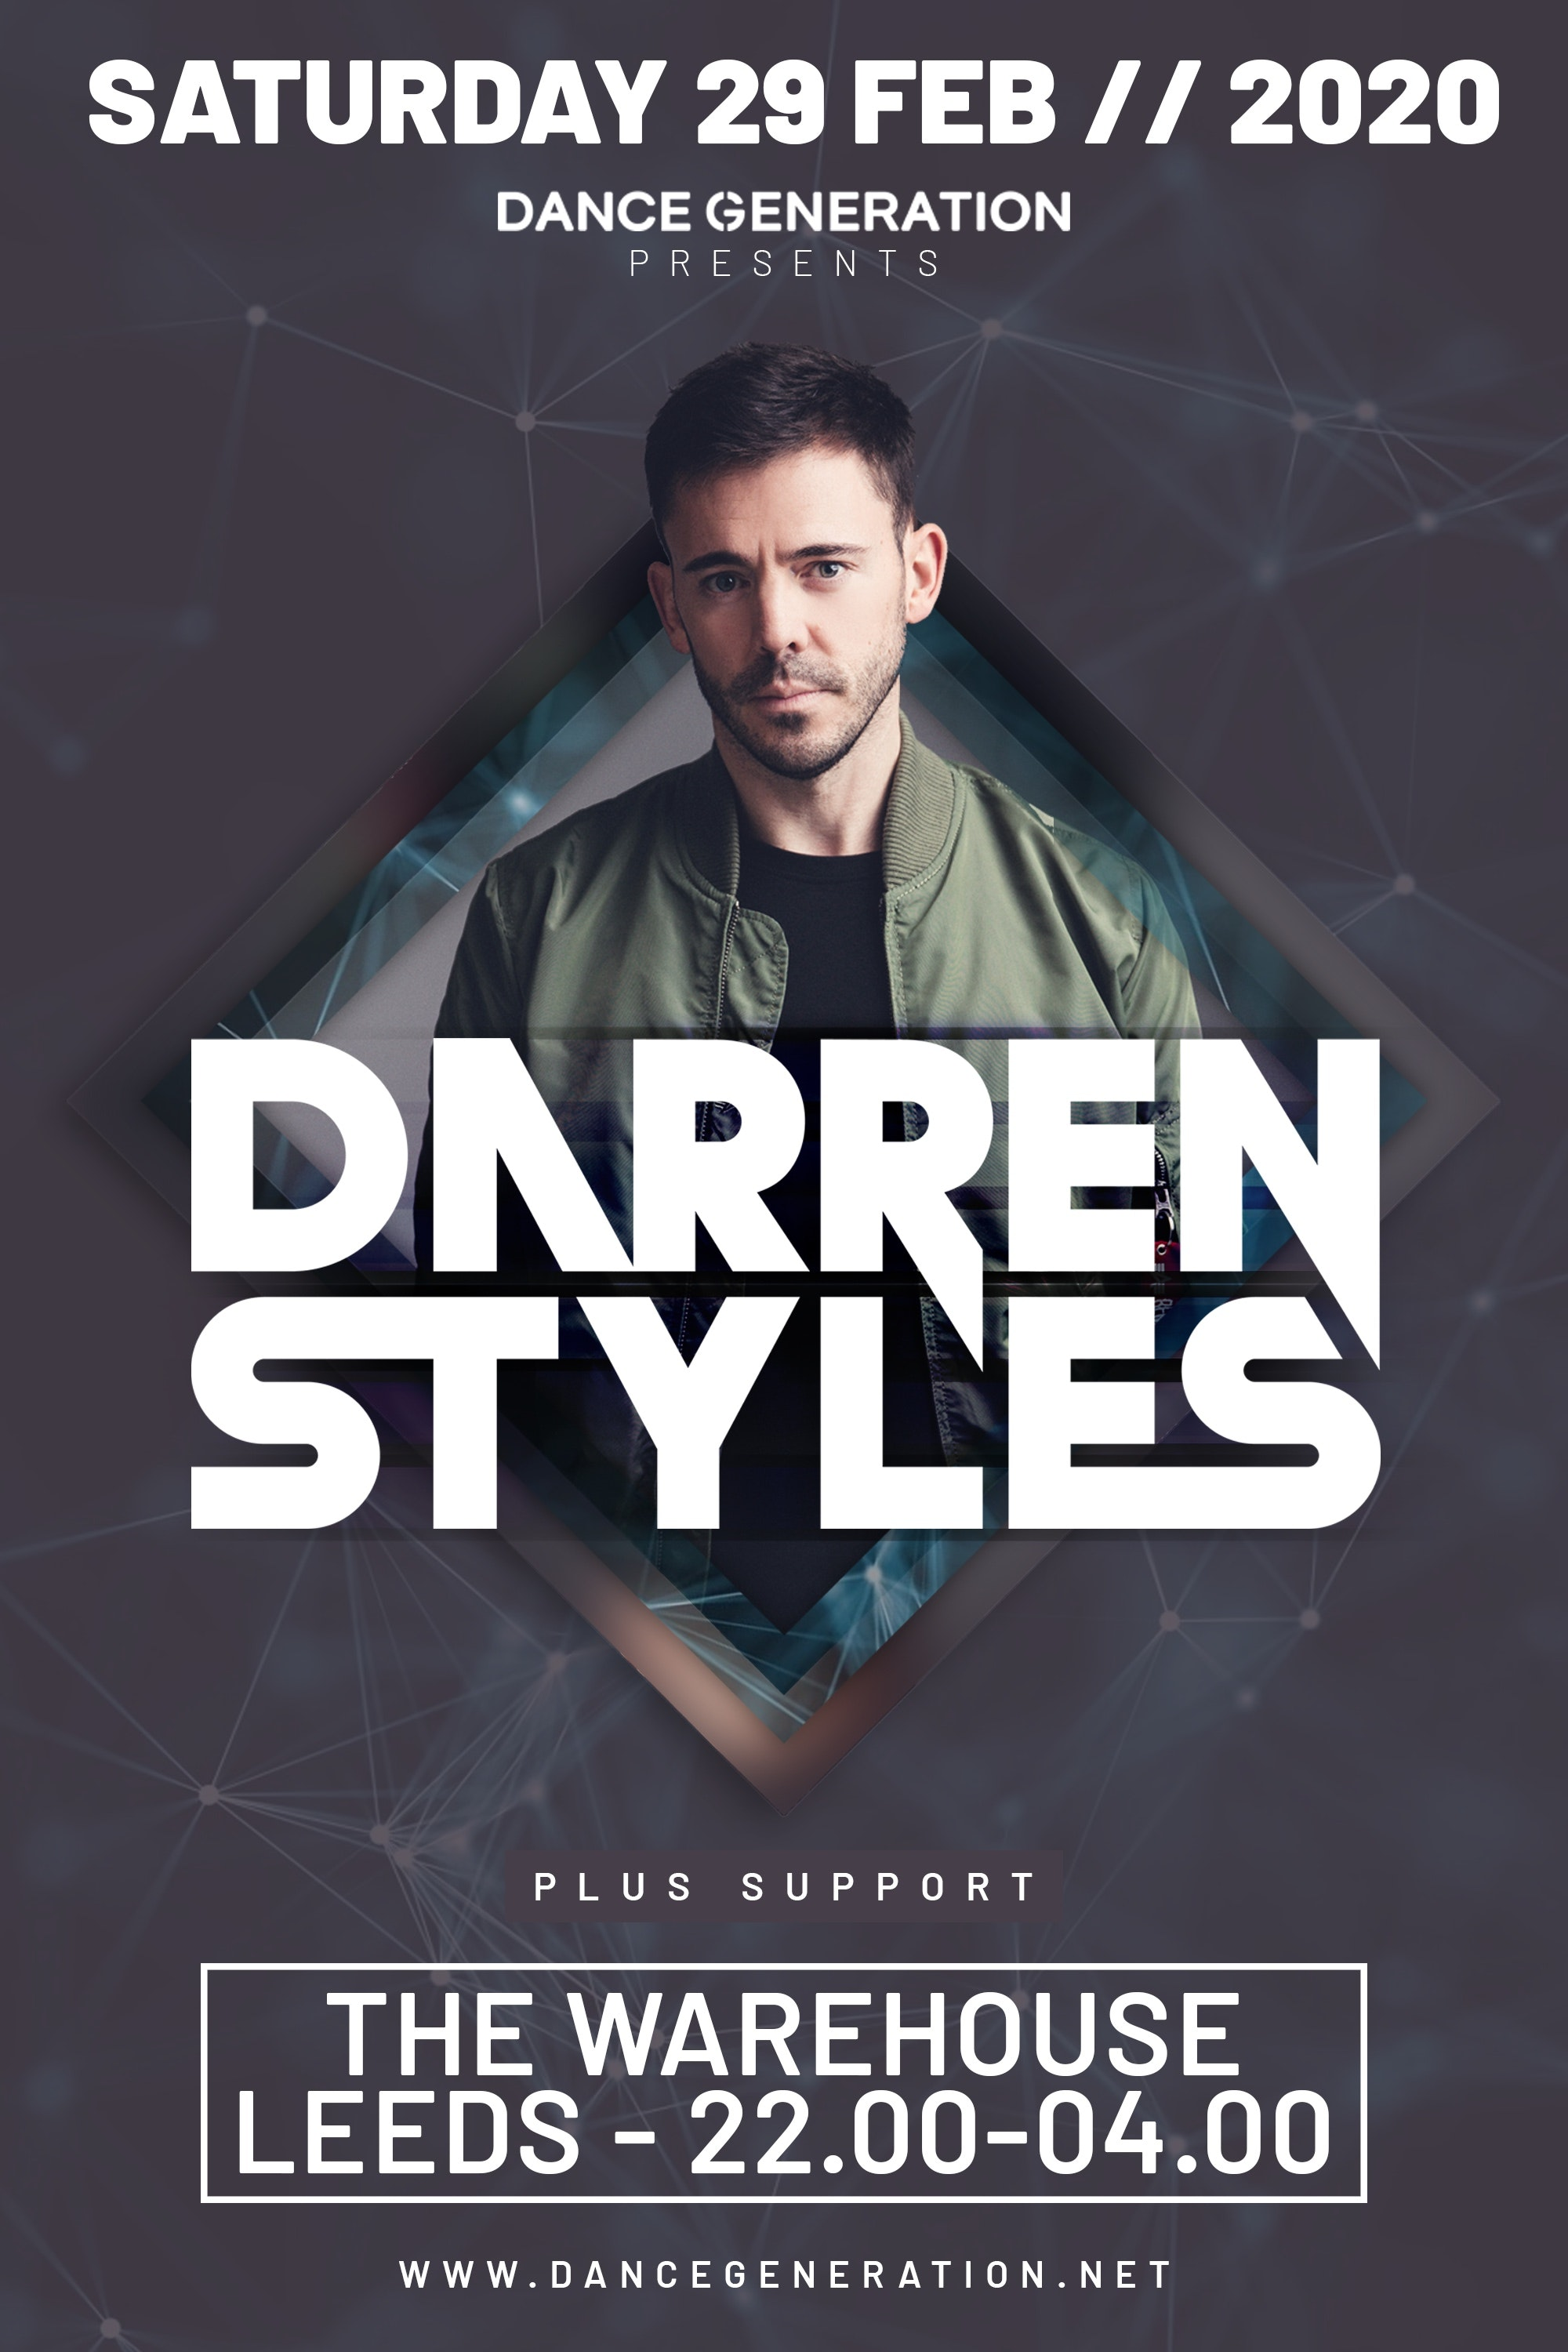 Darren Styles – The Warehouse Leeds